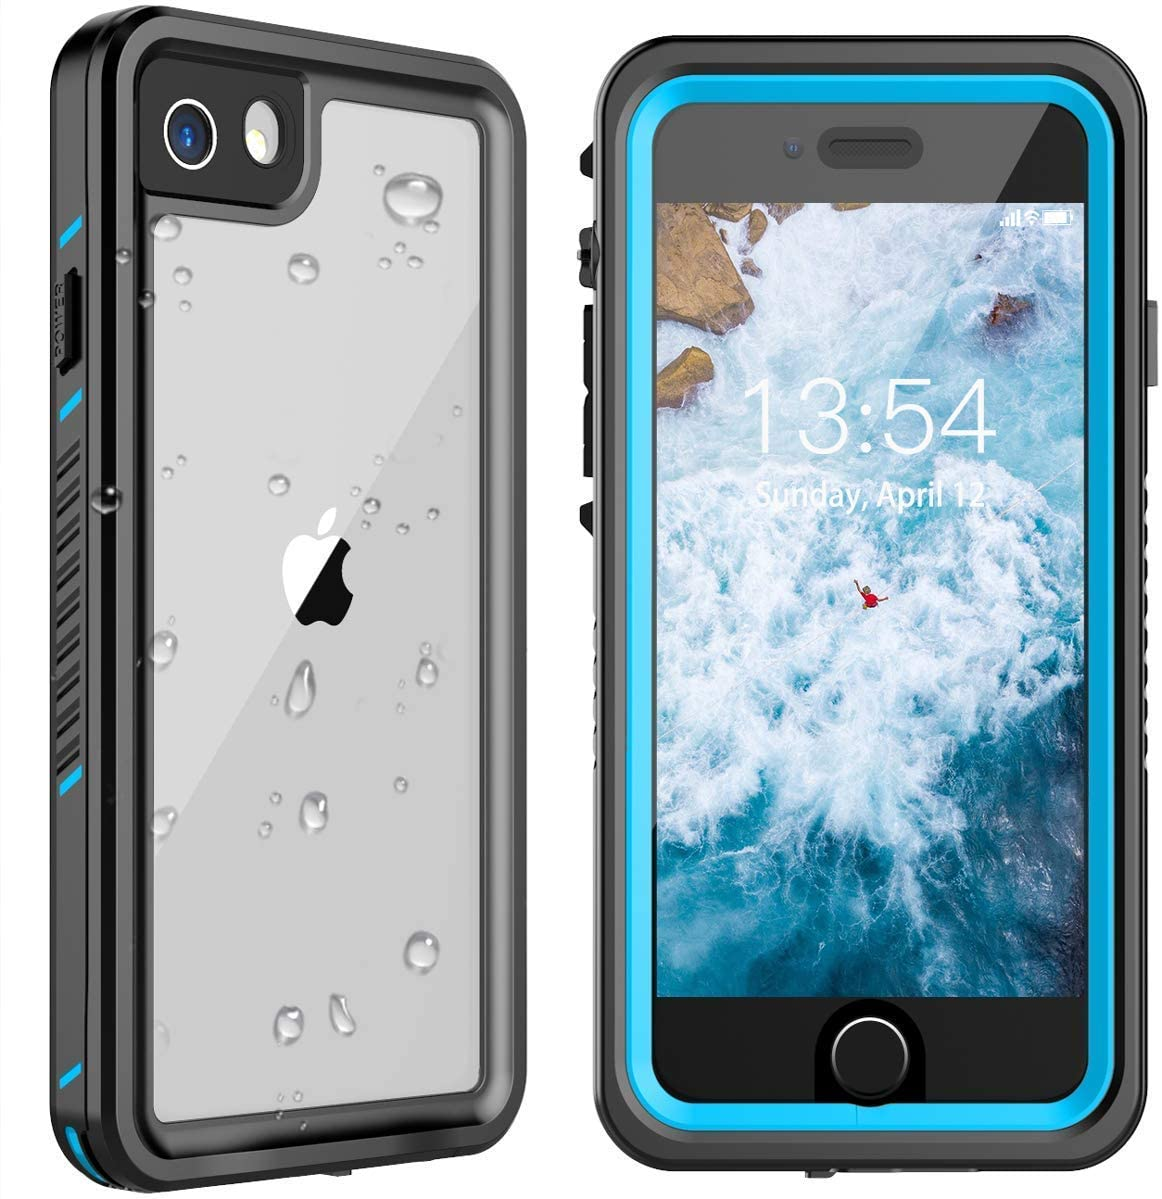 ANTSHARE iPhone SE 2020 Waterproof Case iPhone 7/8 Waterproof Case,iPhone SE 2020 Case Built in Screen Protector Full Body Protective IP68 Underwater Waterproof Case for iPhone 7/8/SE 2020(Blue/Clear)